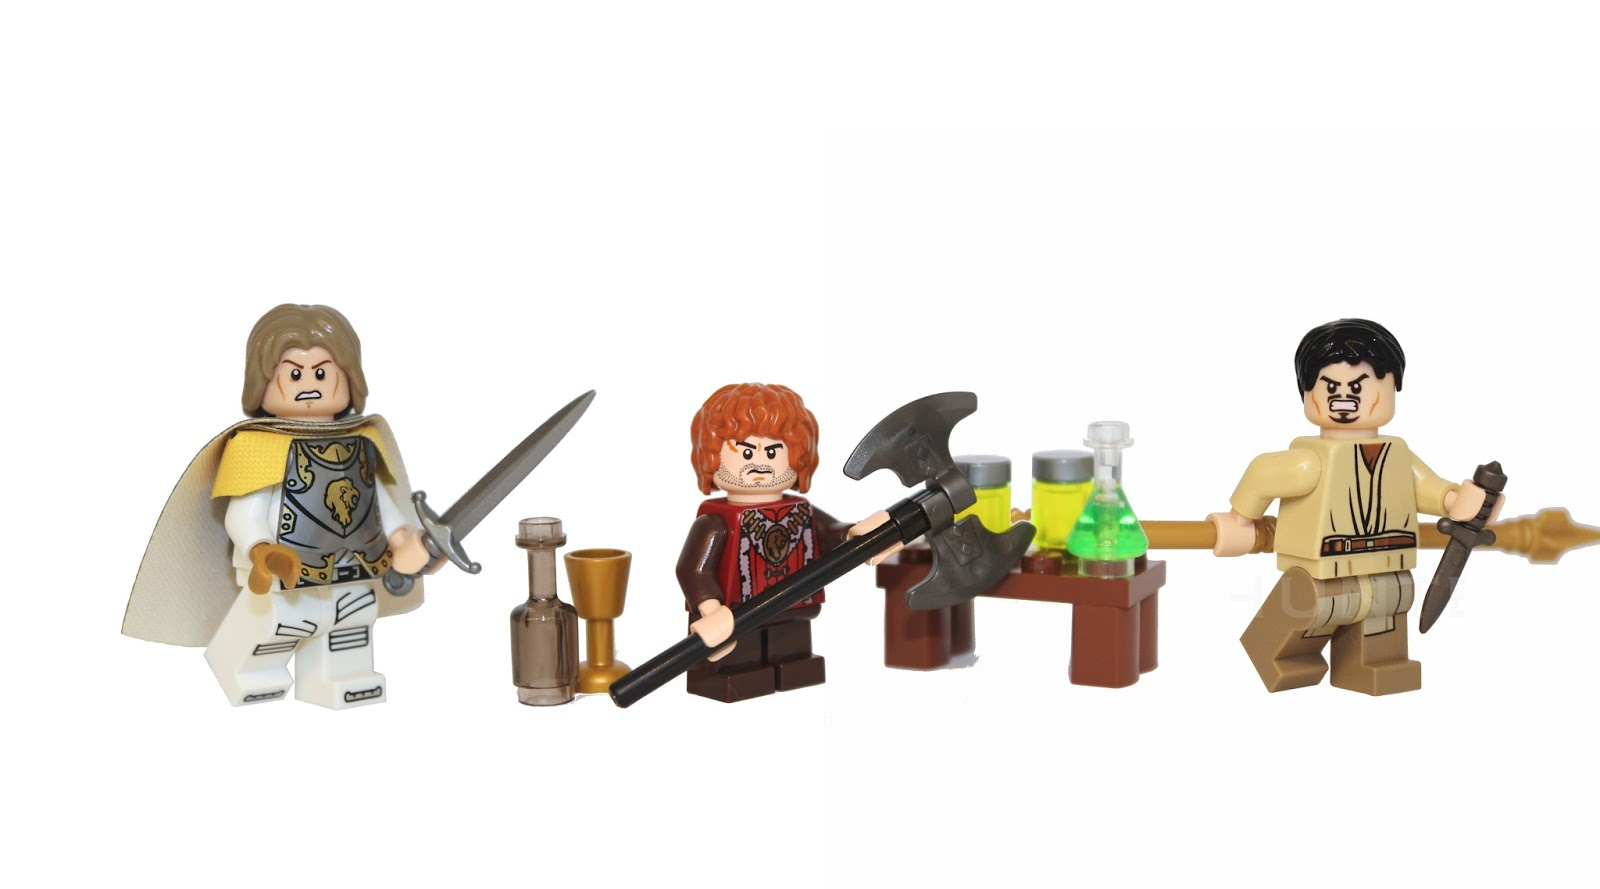 Game of Thrones lego, lego Game of Thrones, Jamie Lannister, Tyrion Lannister, Orberyn Martell, Lego custom mini figures, custom lego, demonhunter bricks